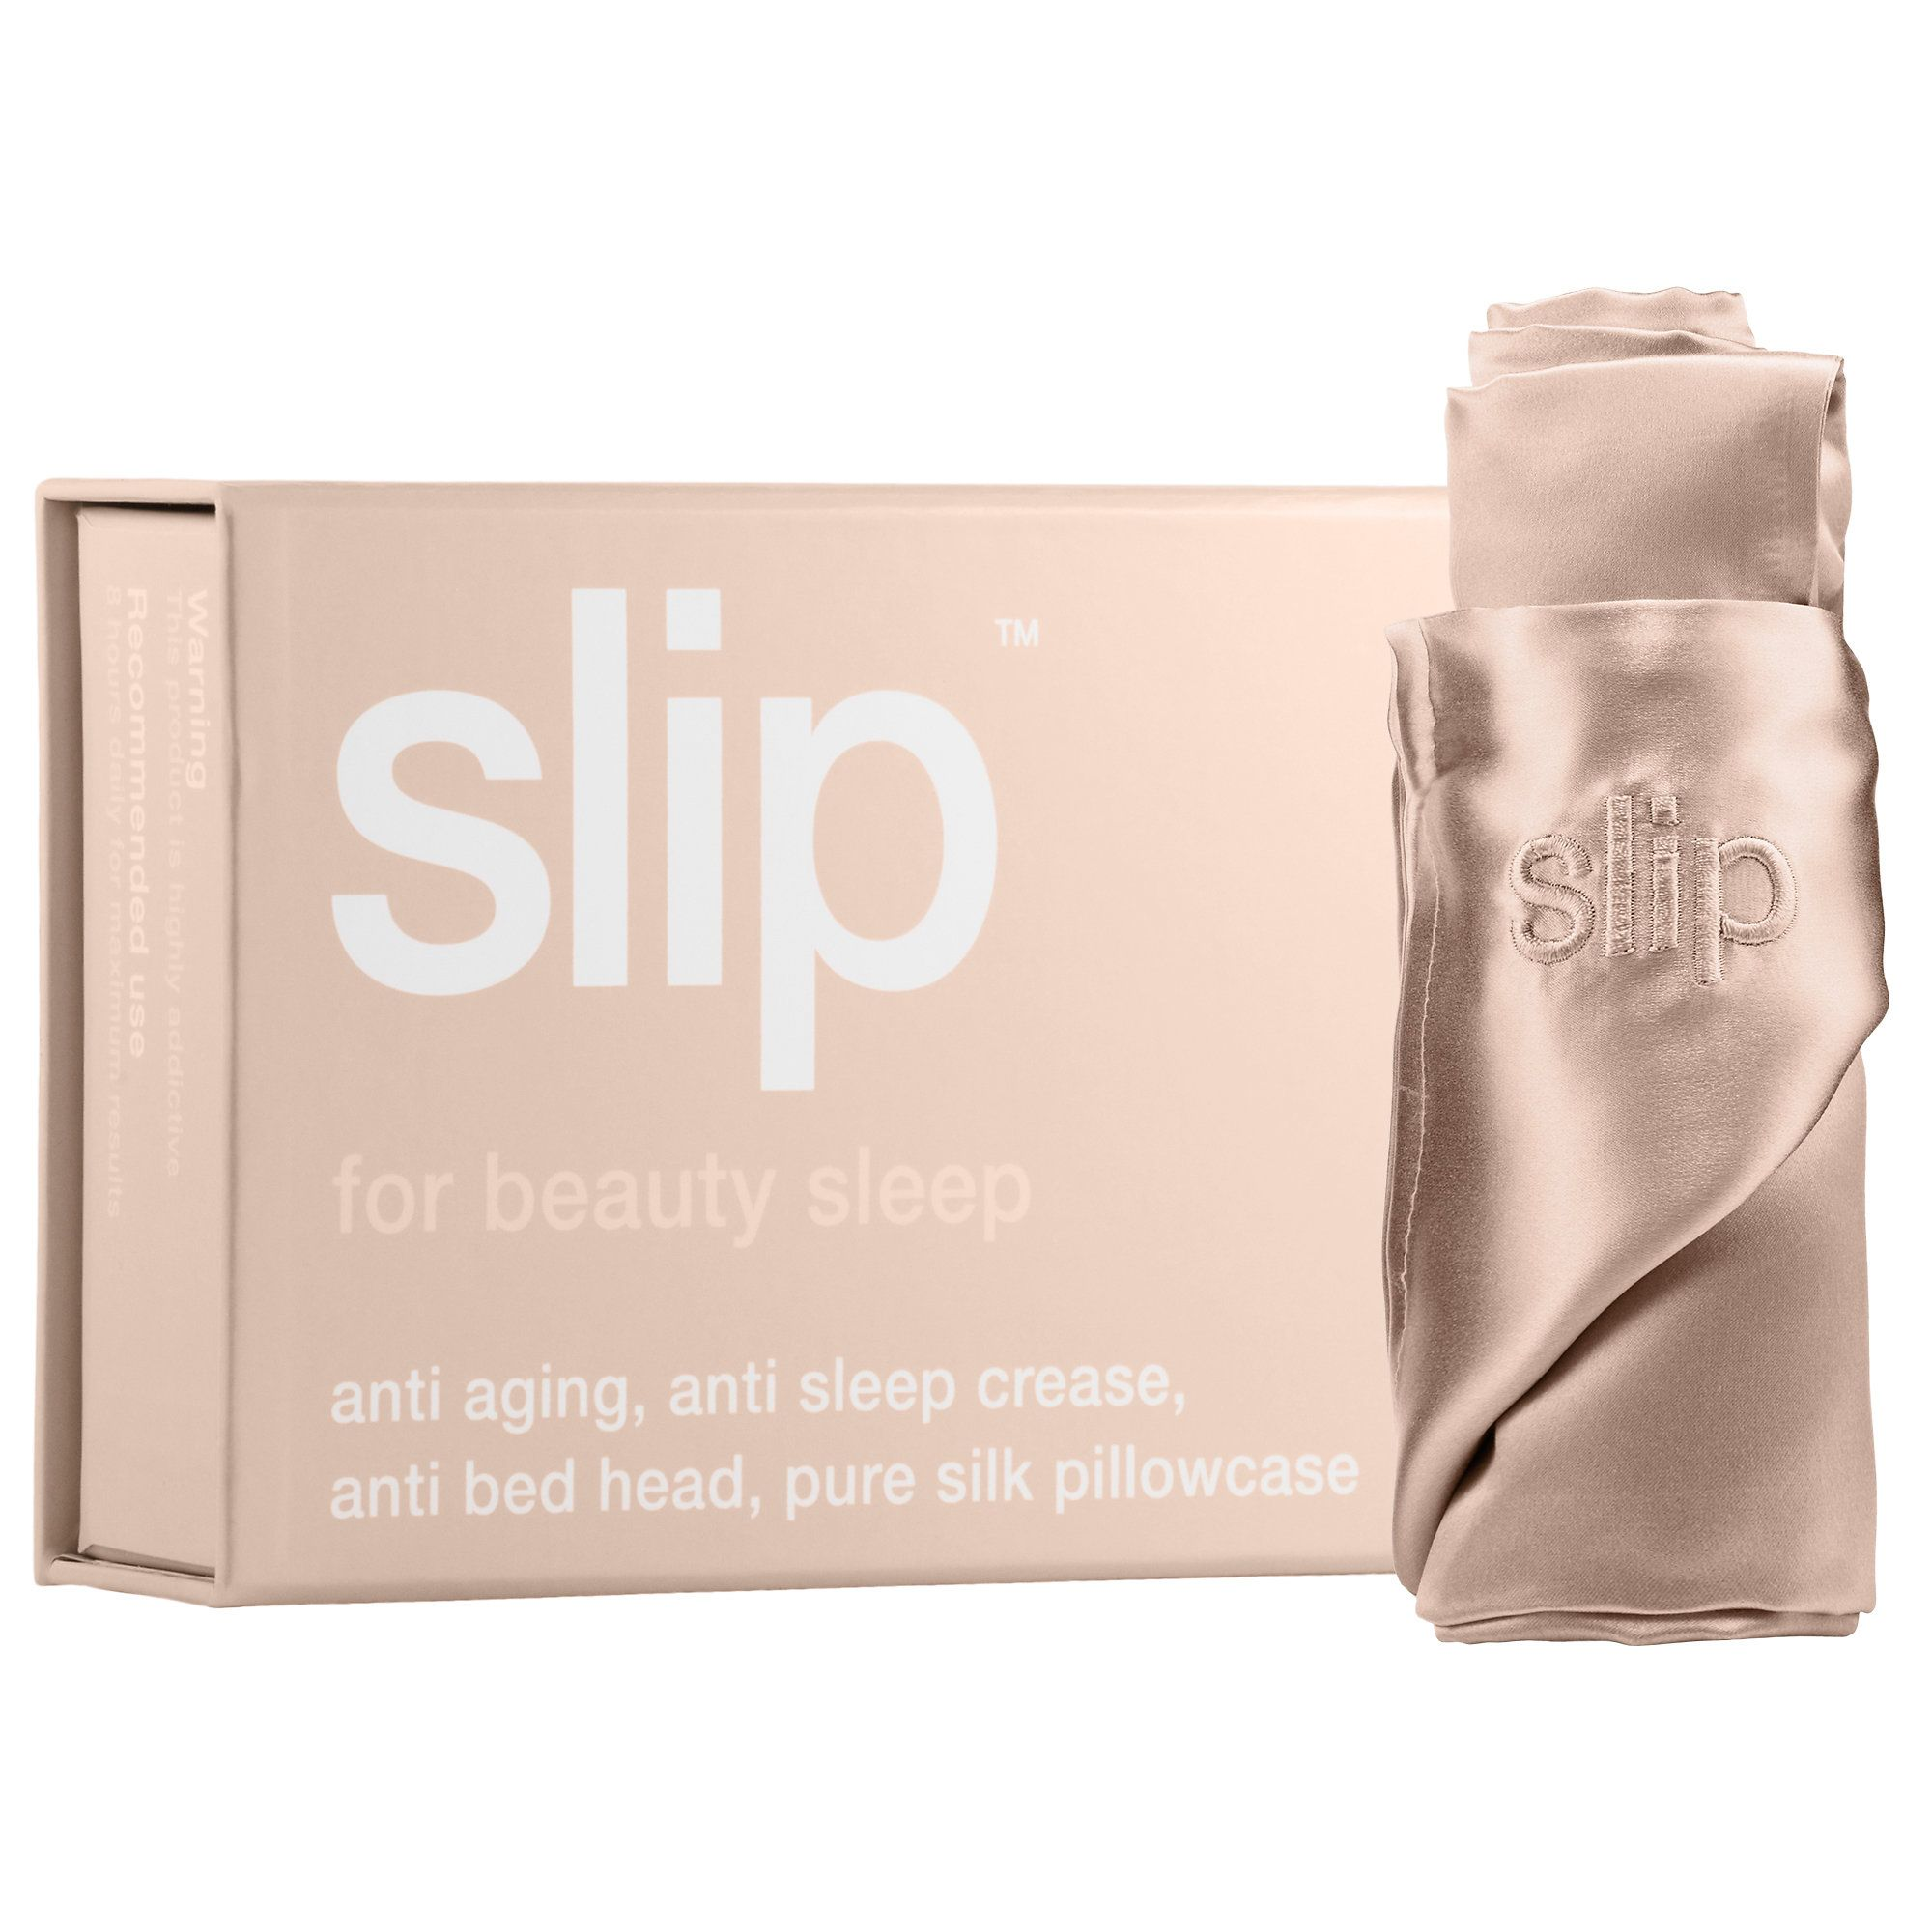 Slip Silk Pillowcase Review Alluring Shop Slip Beauty's Queen Silk Pillowcase At Sephorathe Antiaging Design Inspiration